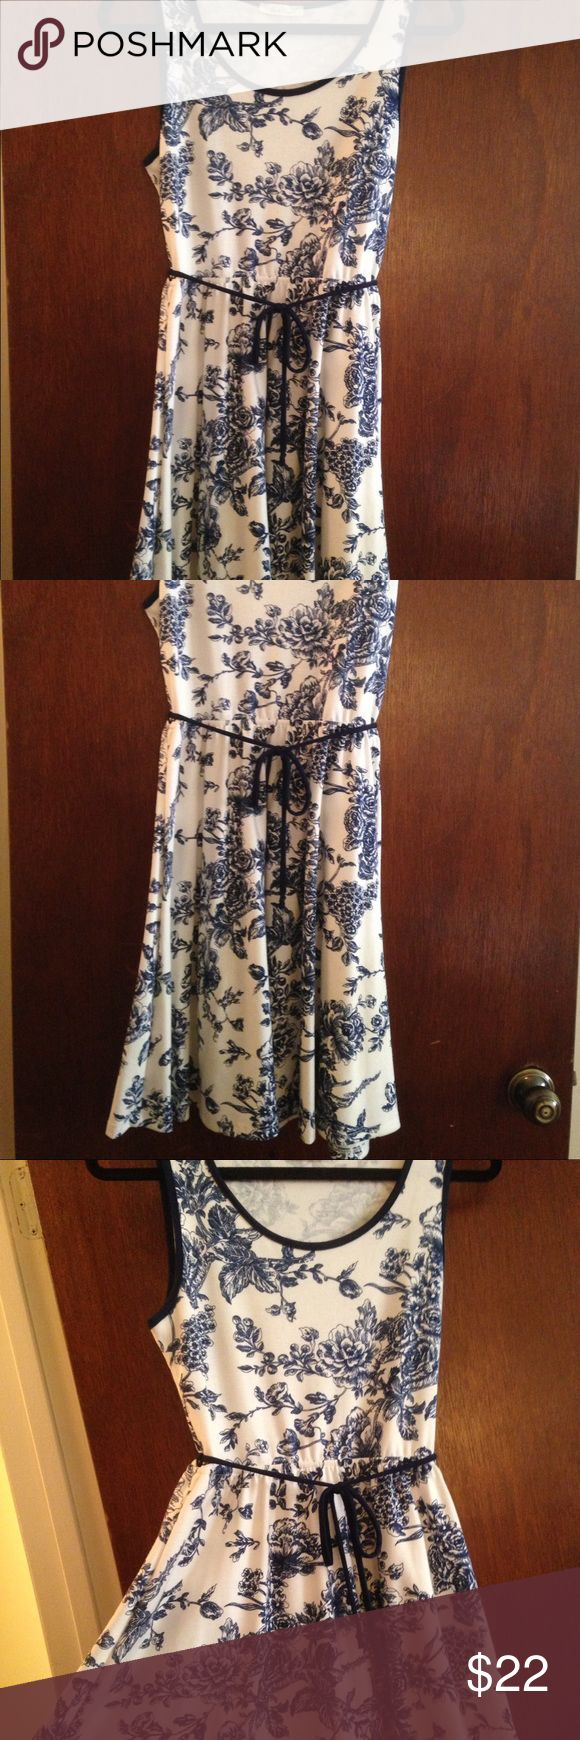 """Gorgeous Toile Sundress from SanFran! Bought in a boutique in San Francisco, this gorgeous toile dress has only been worn once. Precious tie around the waist. Hits right at the knee but shows just enough. ;) (5'6"""", 135 lbs: Cinched waist comfortable and light material. Very soft and comfy) Dresses"""